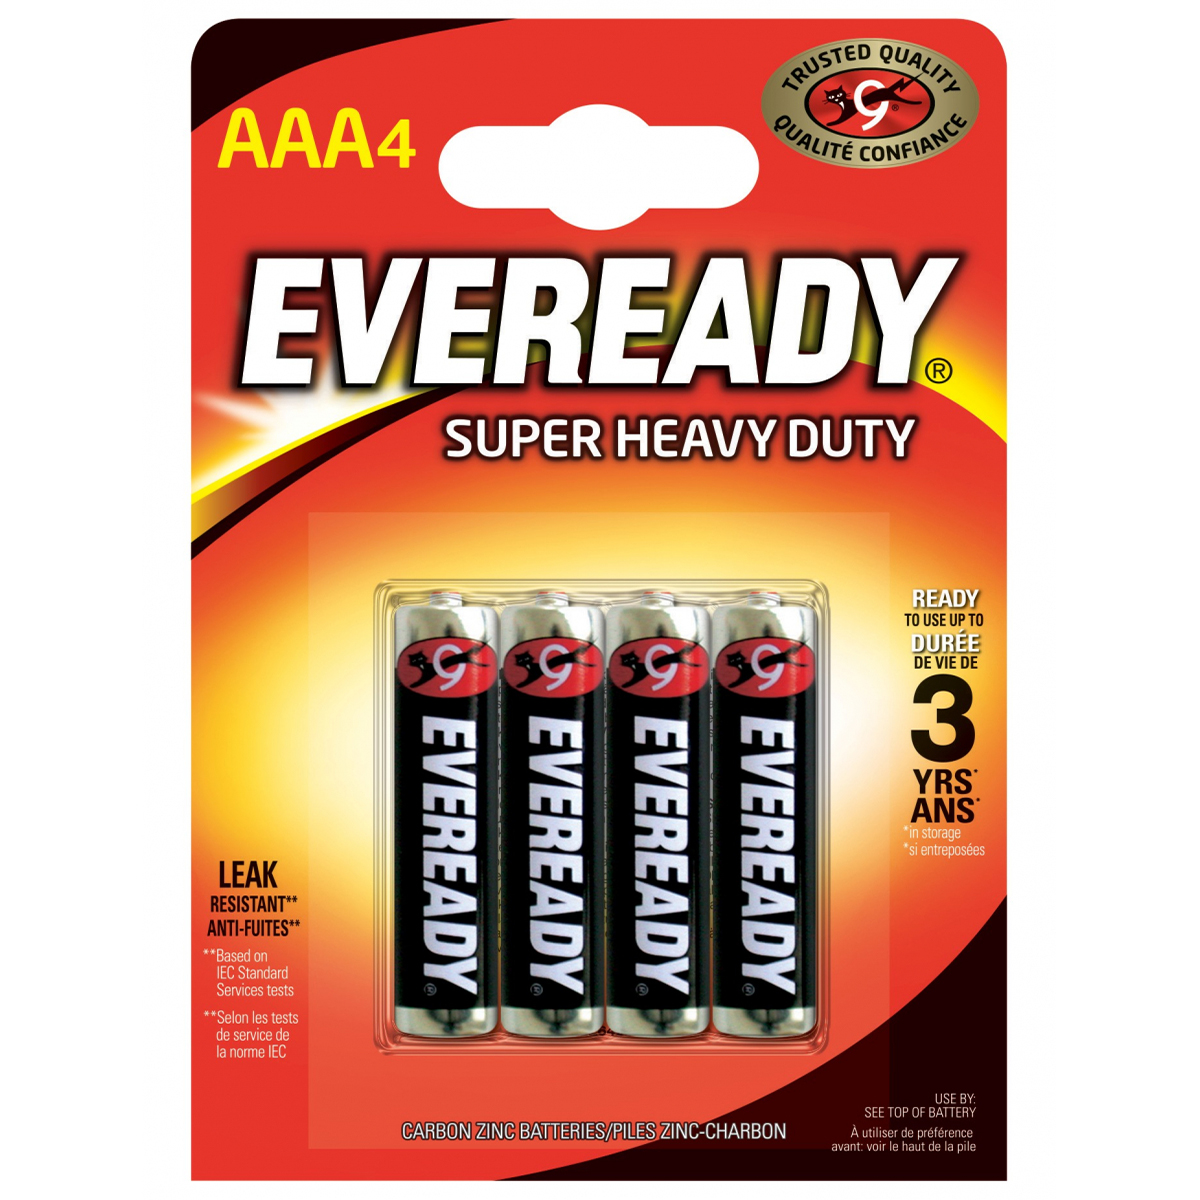 Eveready SHD AAAR3 Pil FSB4